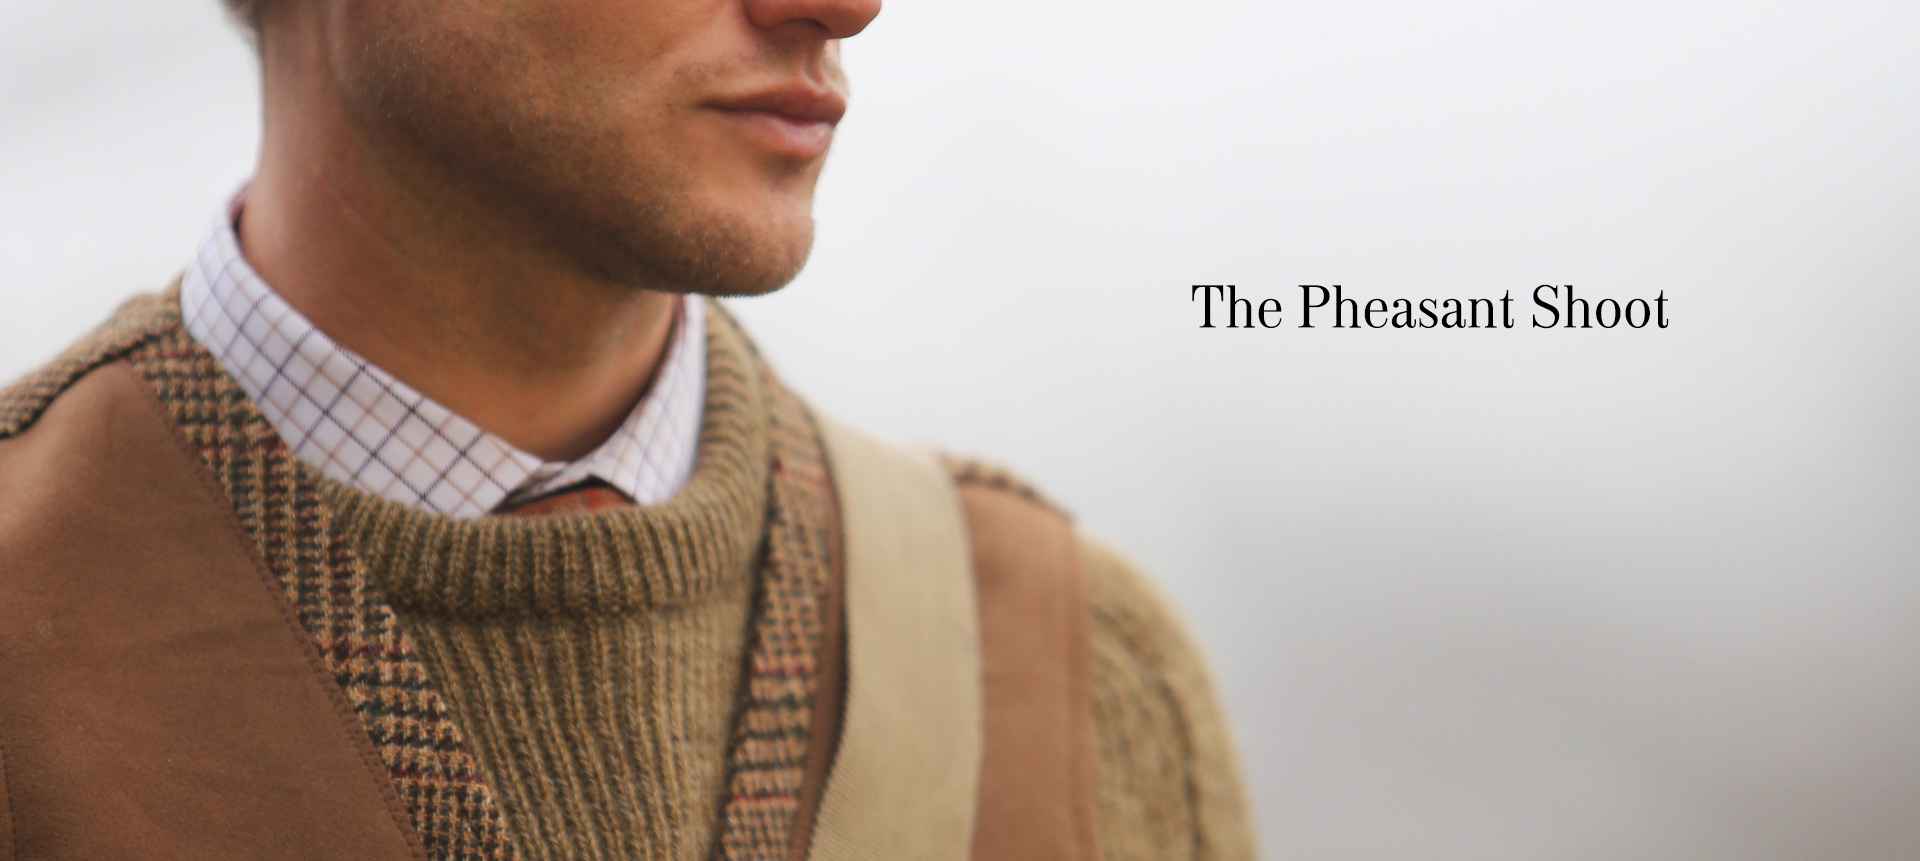 The Pheasant shoot clothing - Pennine Shooting Socks offer the very best quality socks for shooting sport and hunting game. Browse our huge range of shooting clothing here